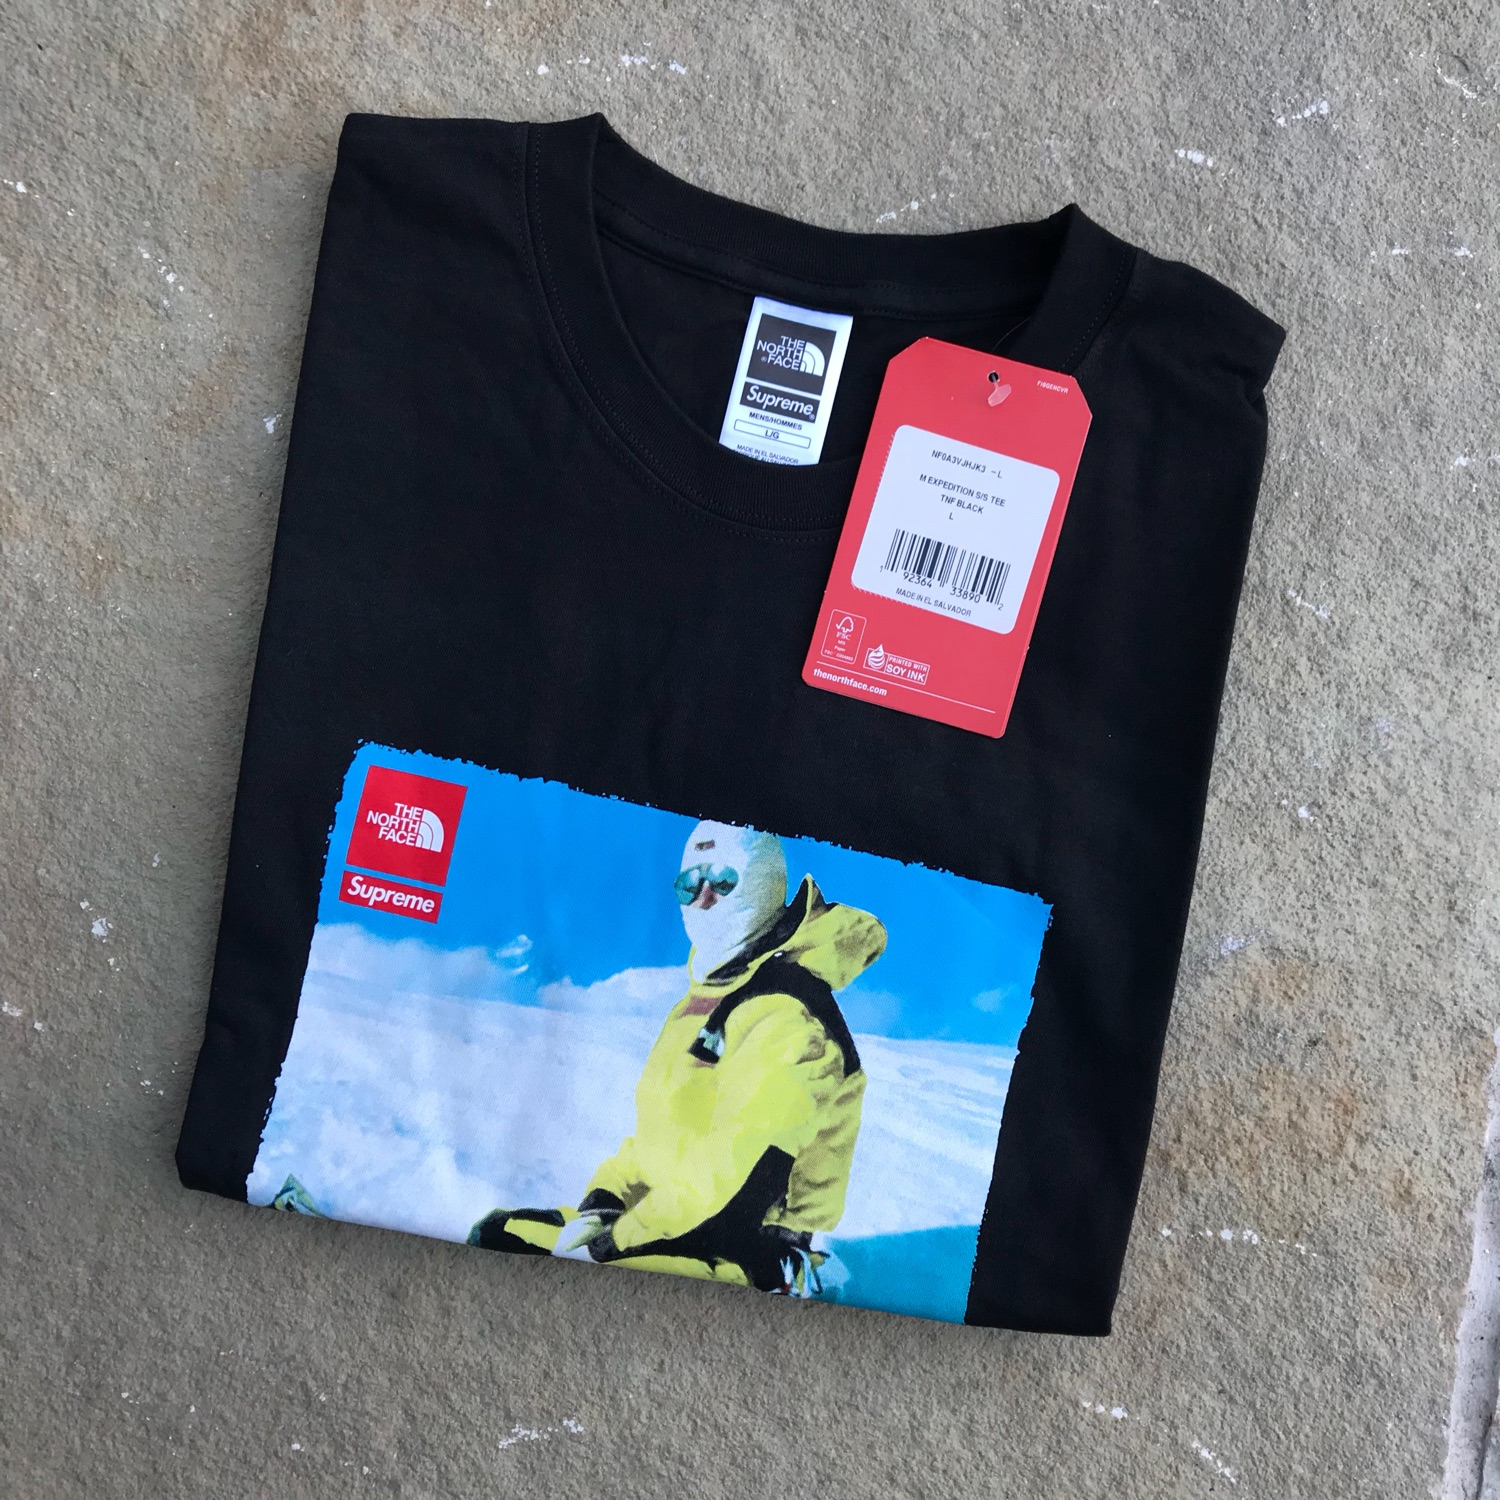 386e68426 Supreme X The North Face Expedition T-Shirt L